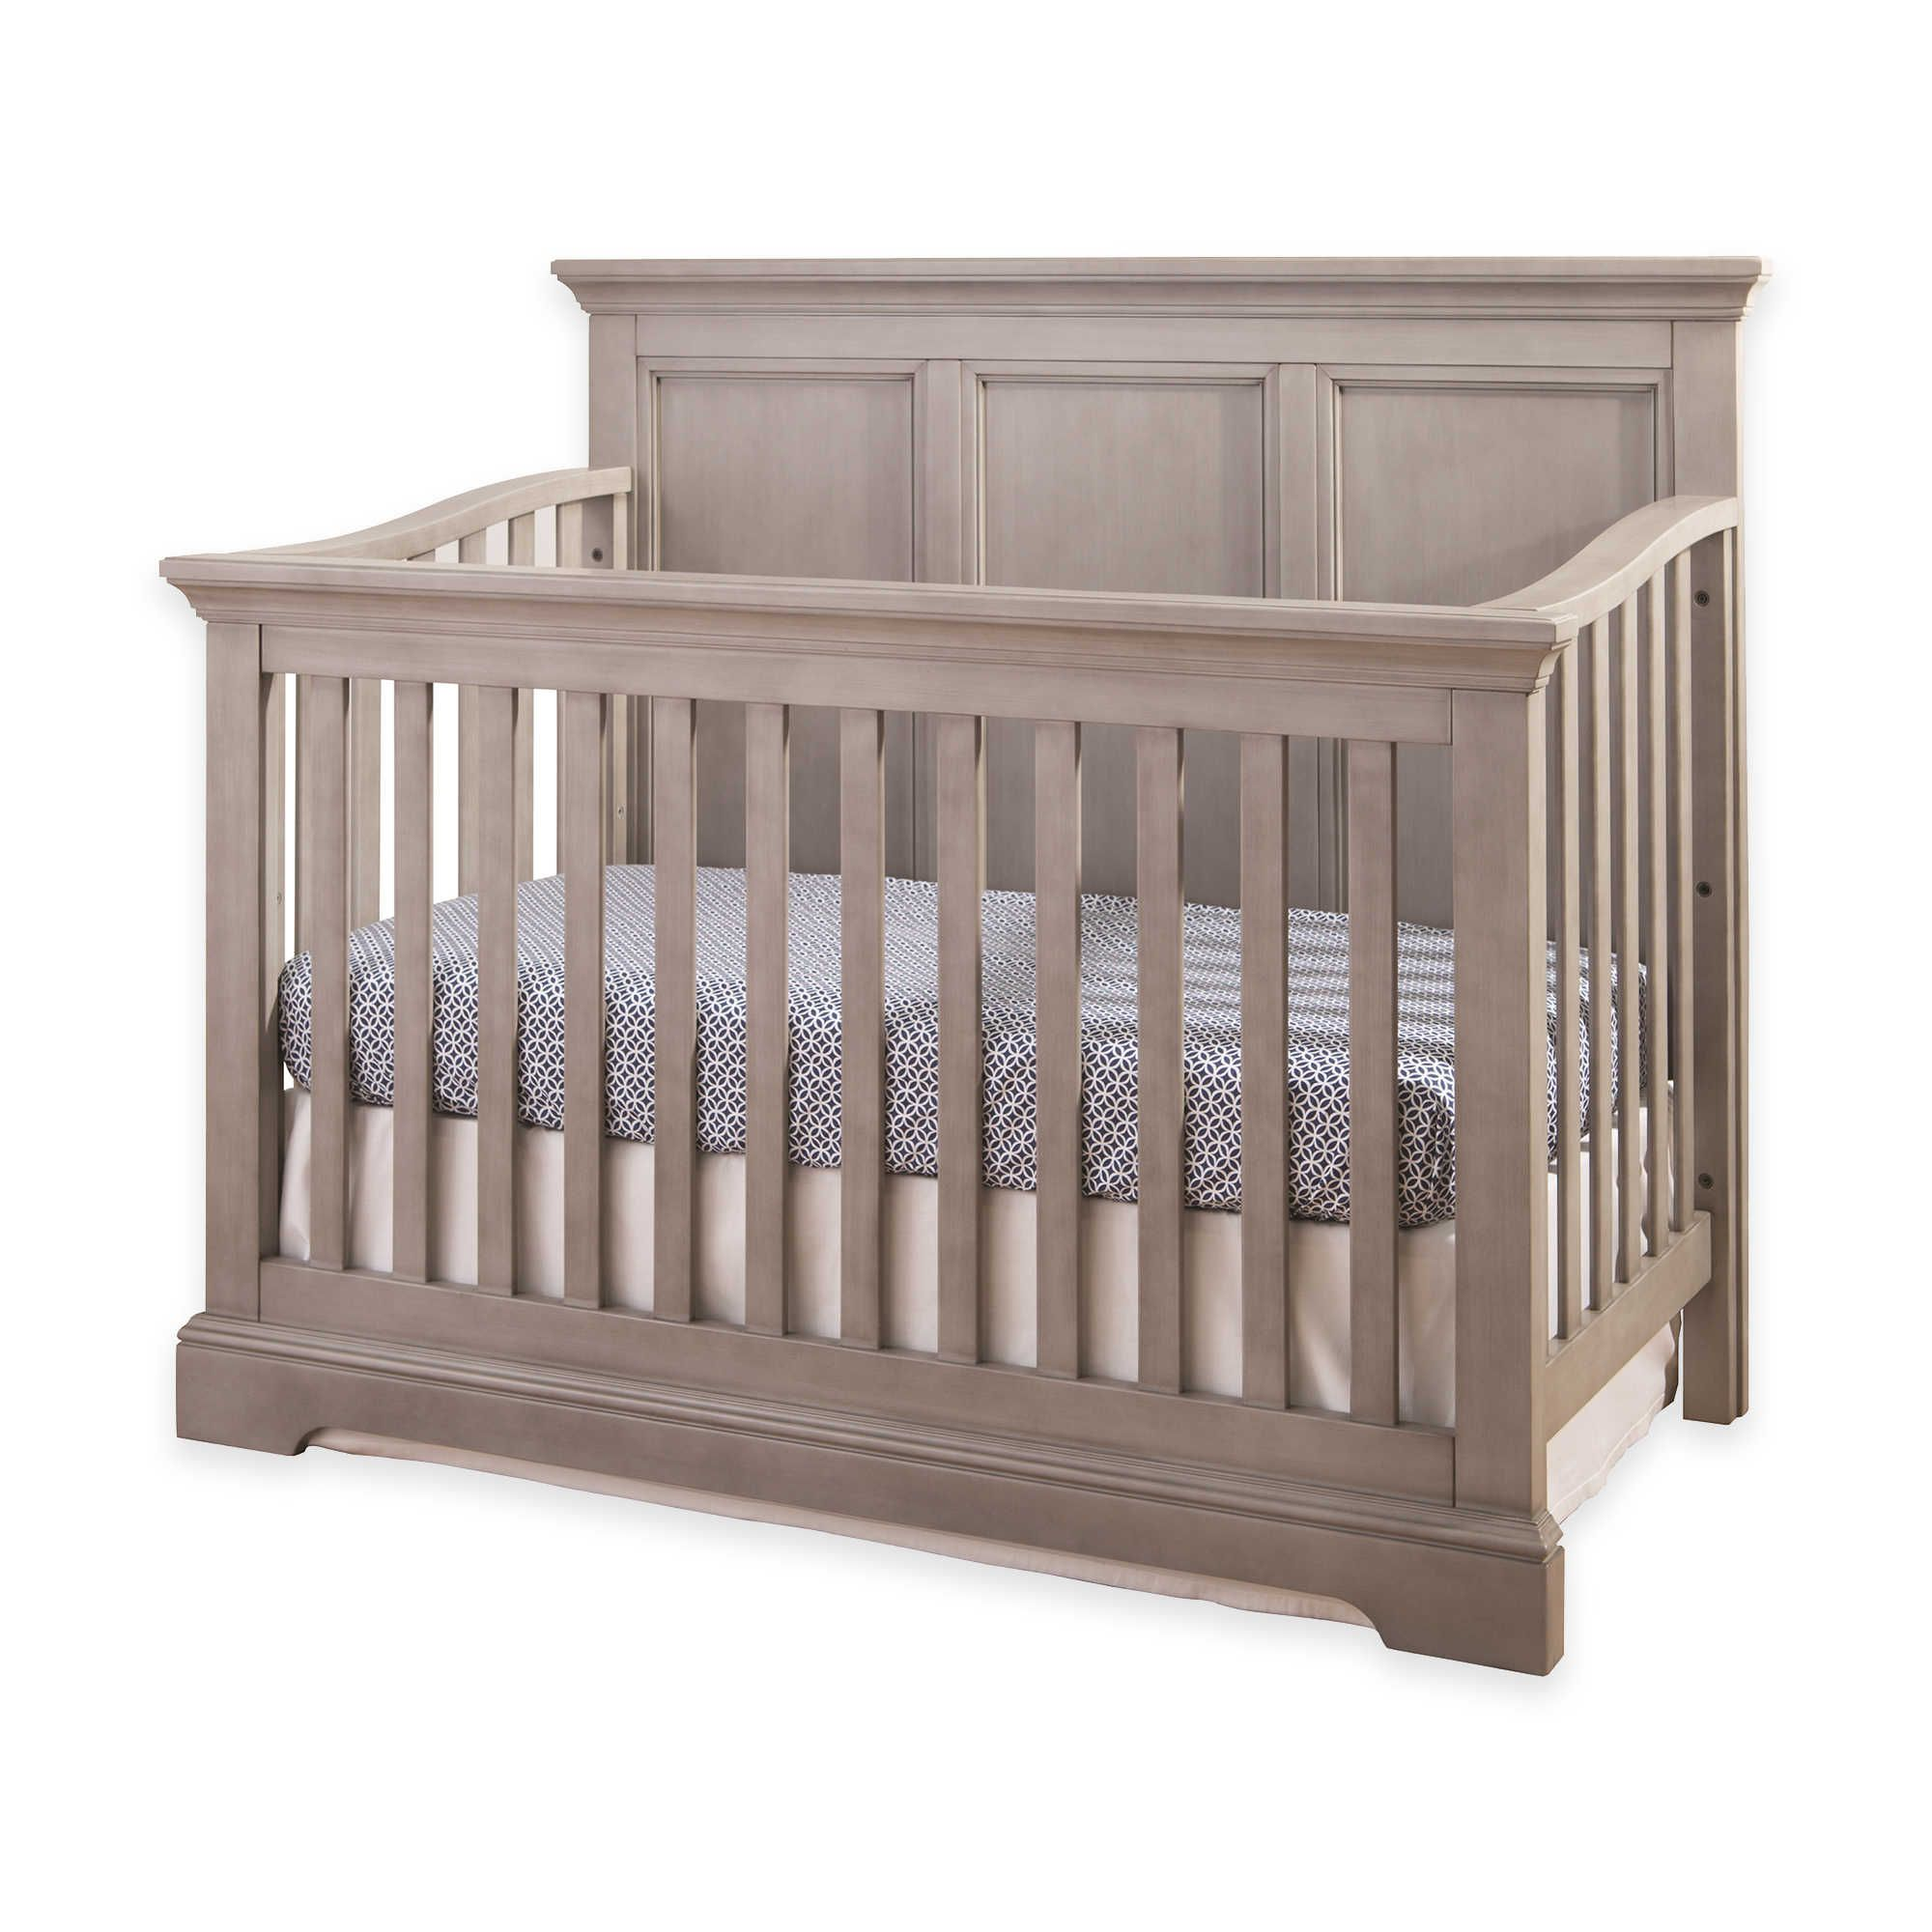 westwood jonesport cribs product grey enh index cloud crib us design r jsp babies convertible